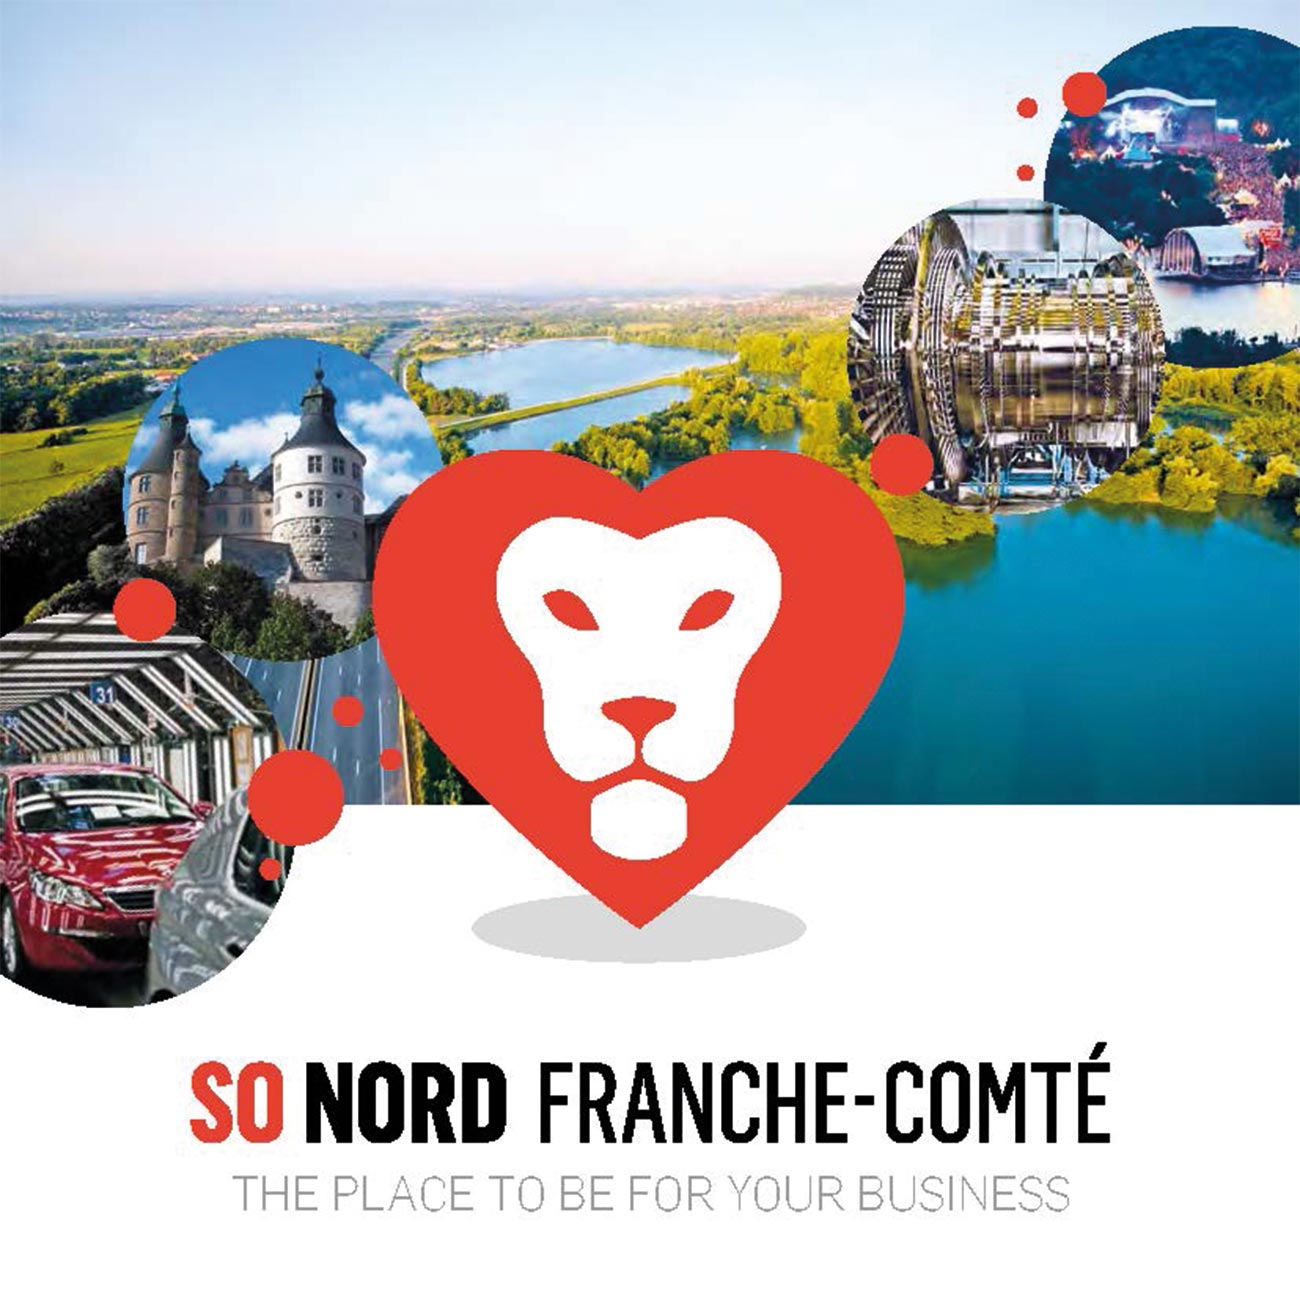 Documentation - SO Nord Franche-Comté - The place to be for your business